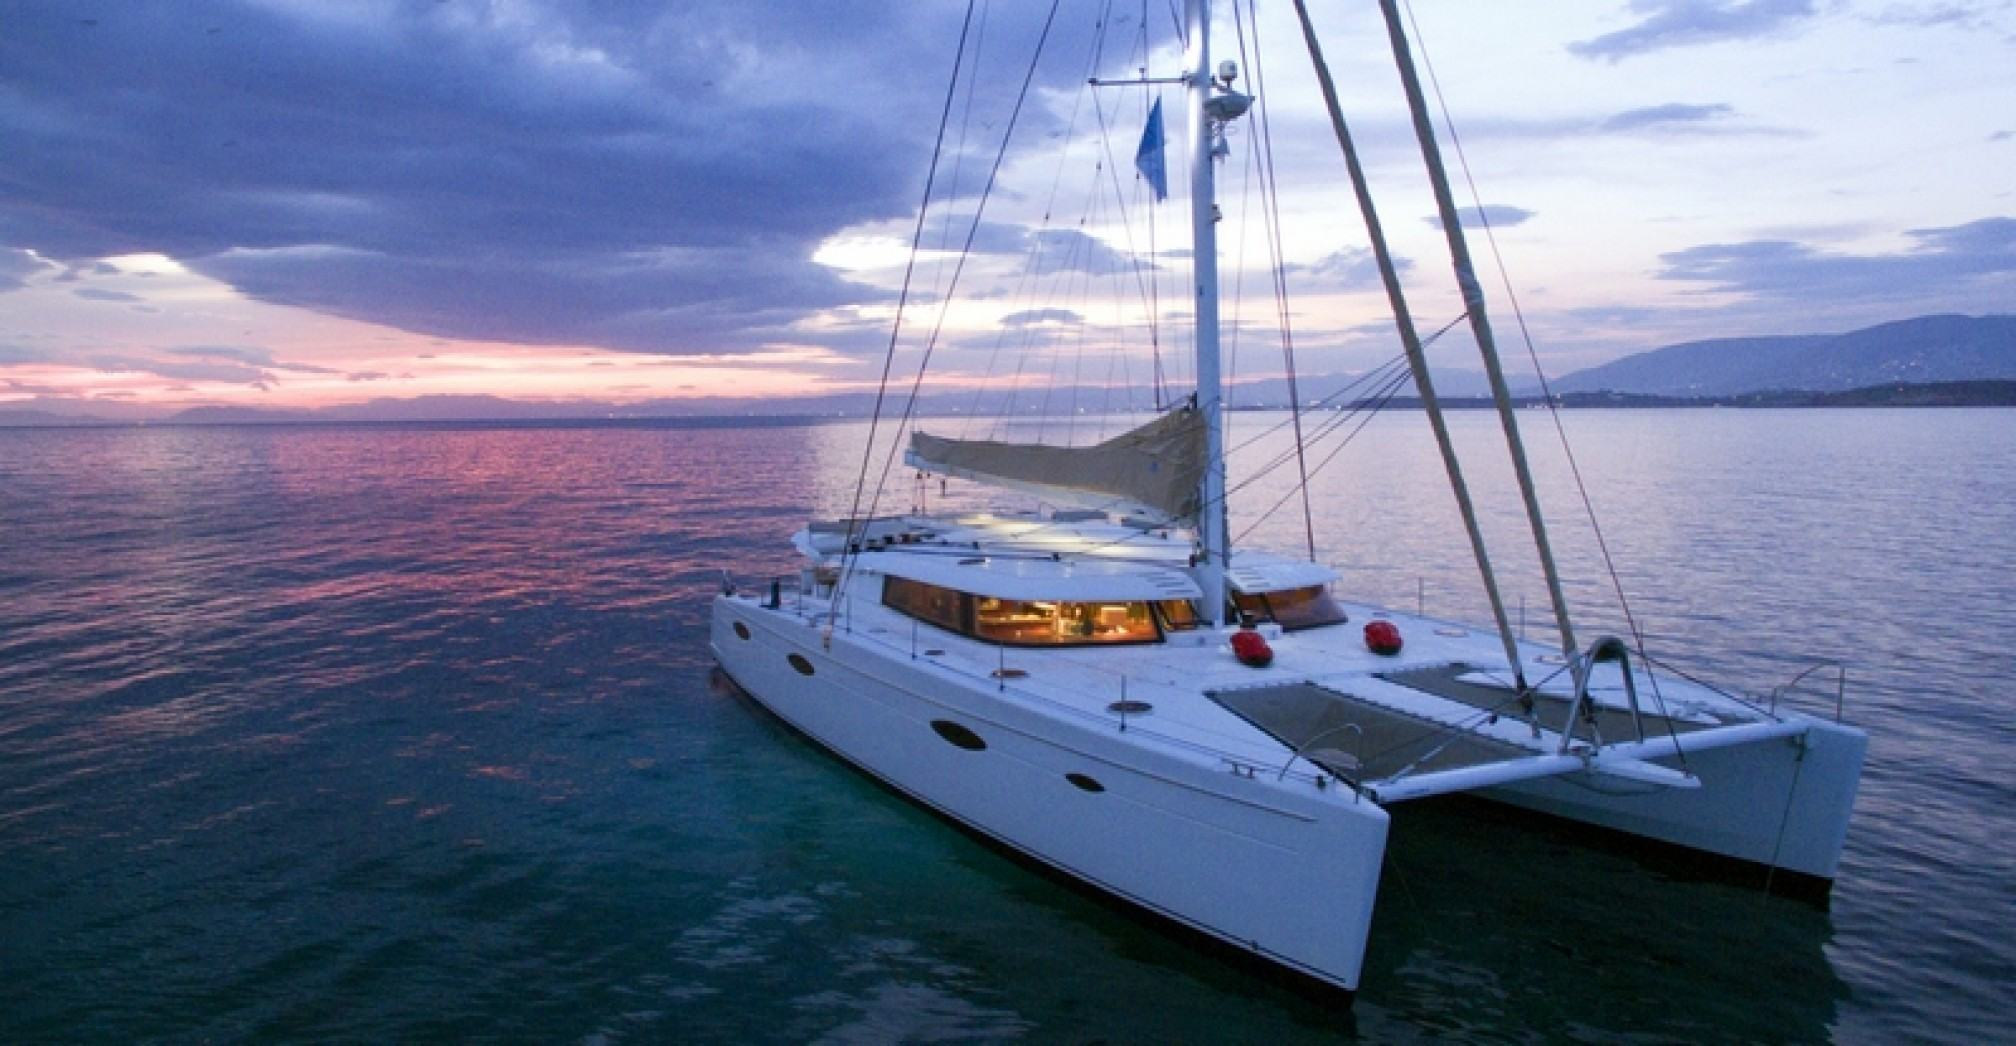 'World's End' catamaran charter mooring